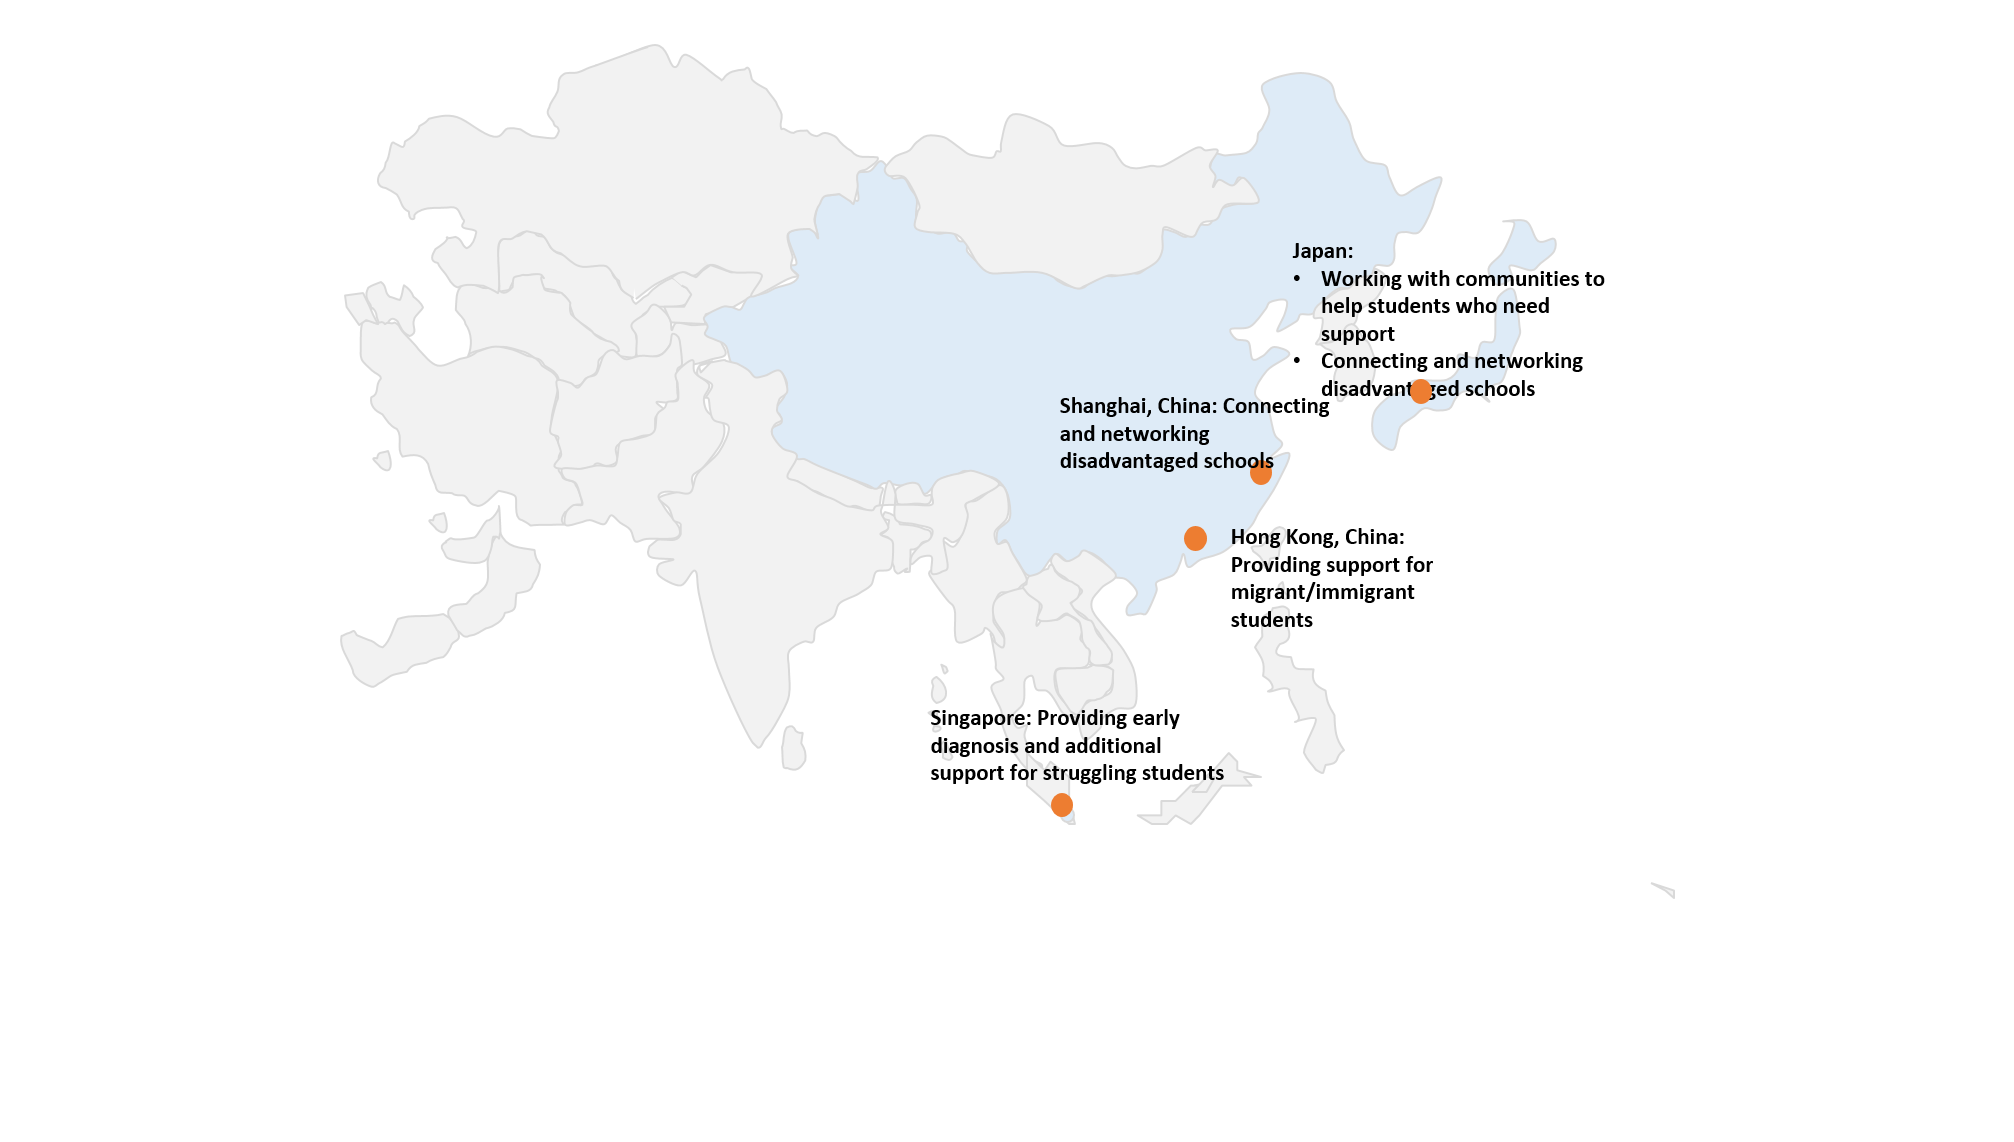 How_Do_Top-performing_East_Asian_Countries_Support_Low-performing_Students_and_Schools_February_25_V2.png